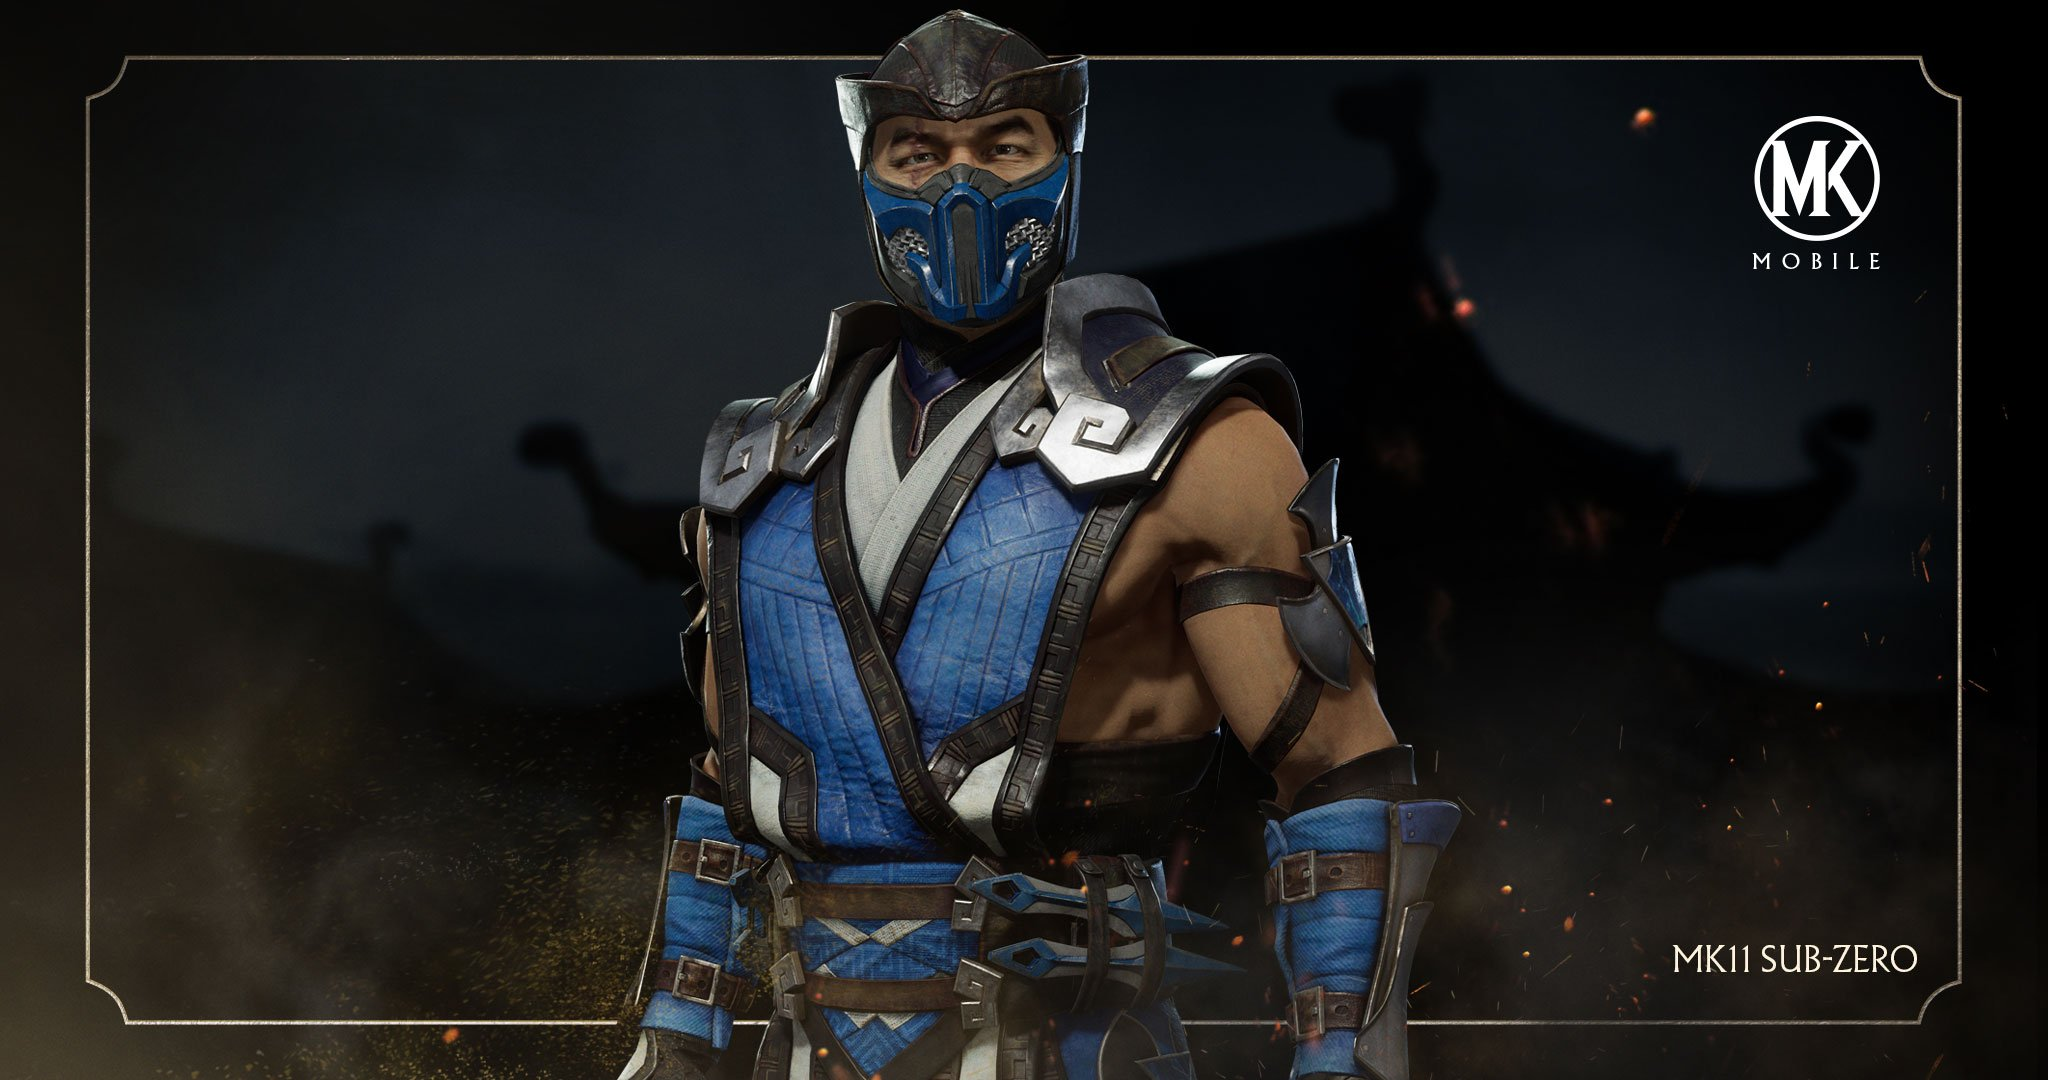 Mk Mobile Background Mk11 Sub Zero Mortal Kombat Games Fan Site